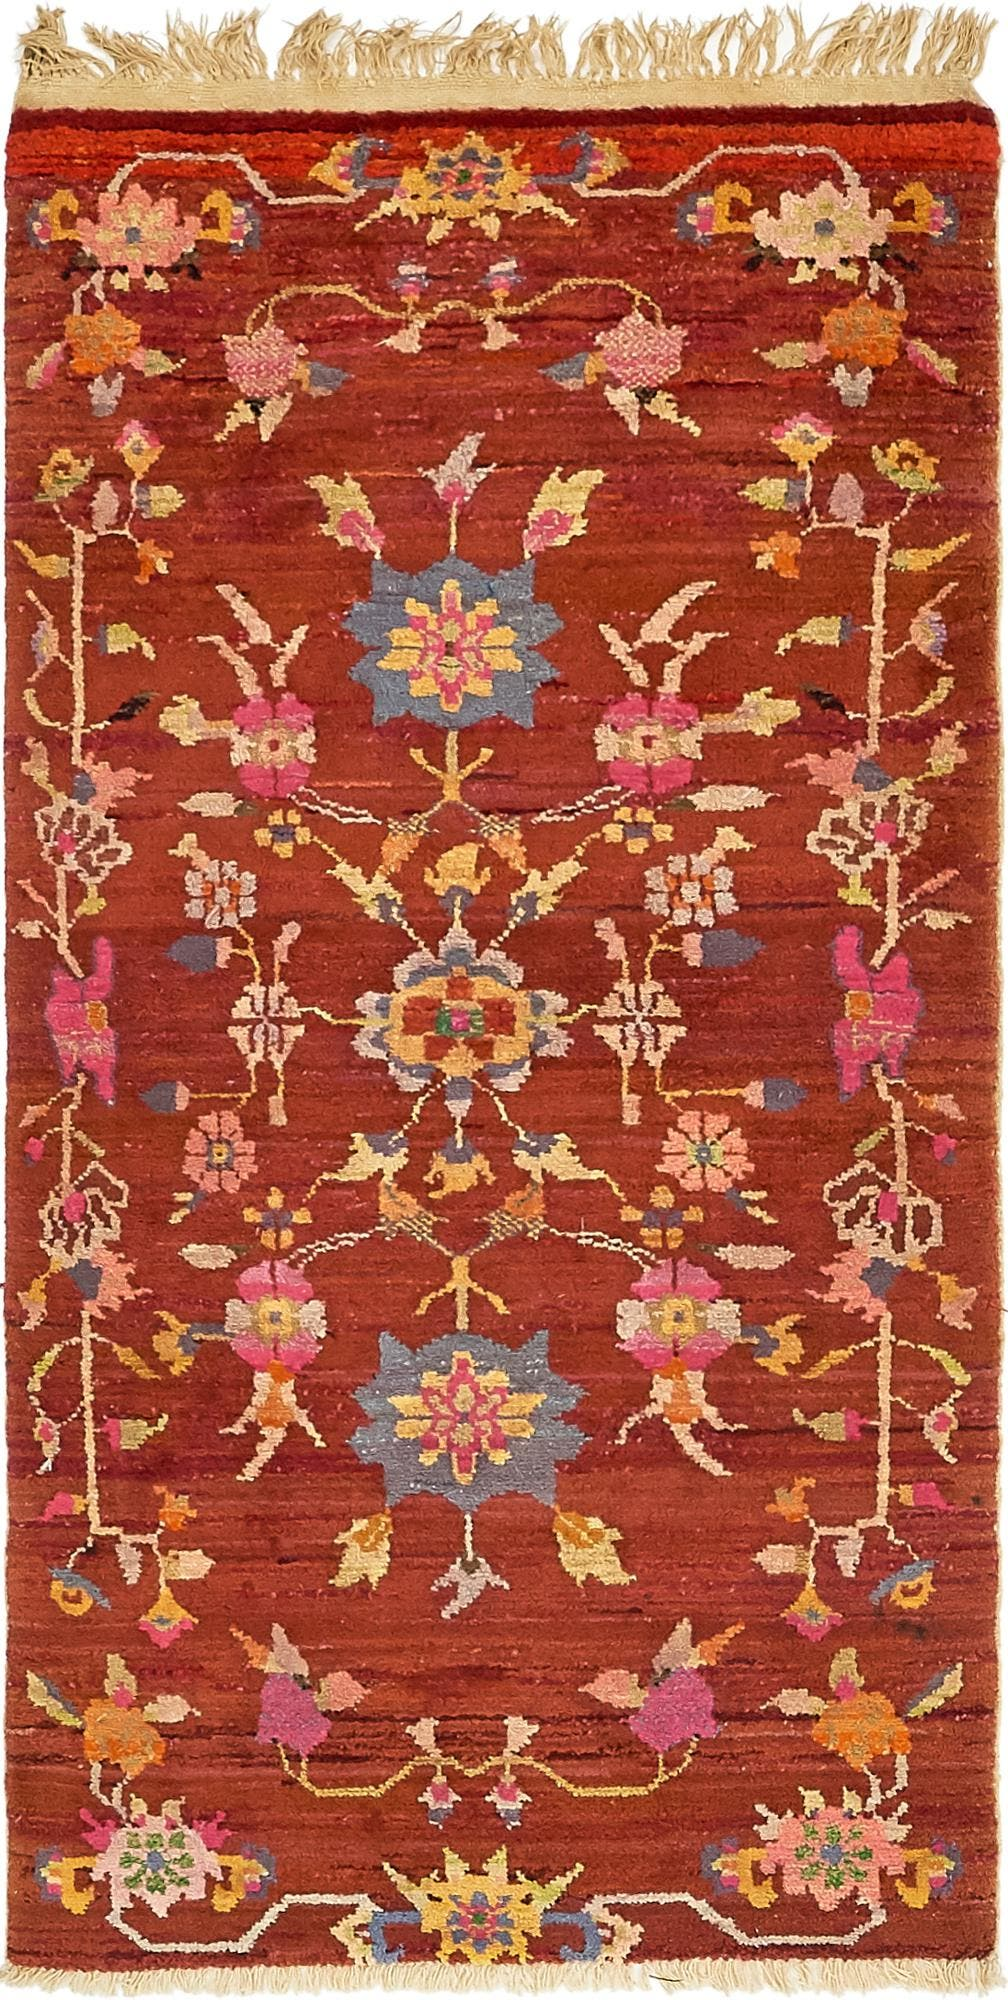 2' 9 x 5' 7 Antique Finish Rug main image